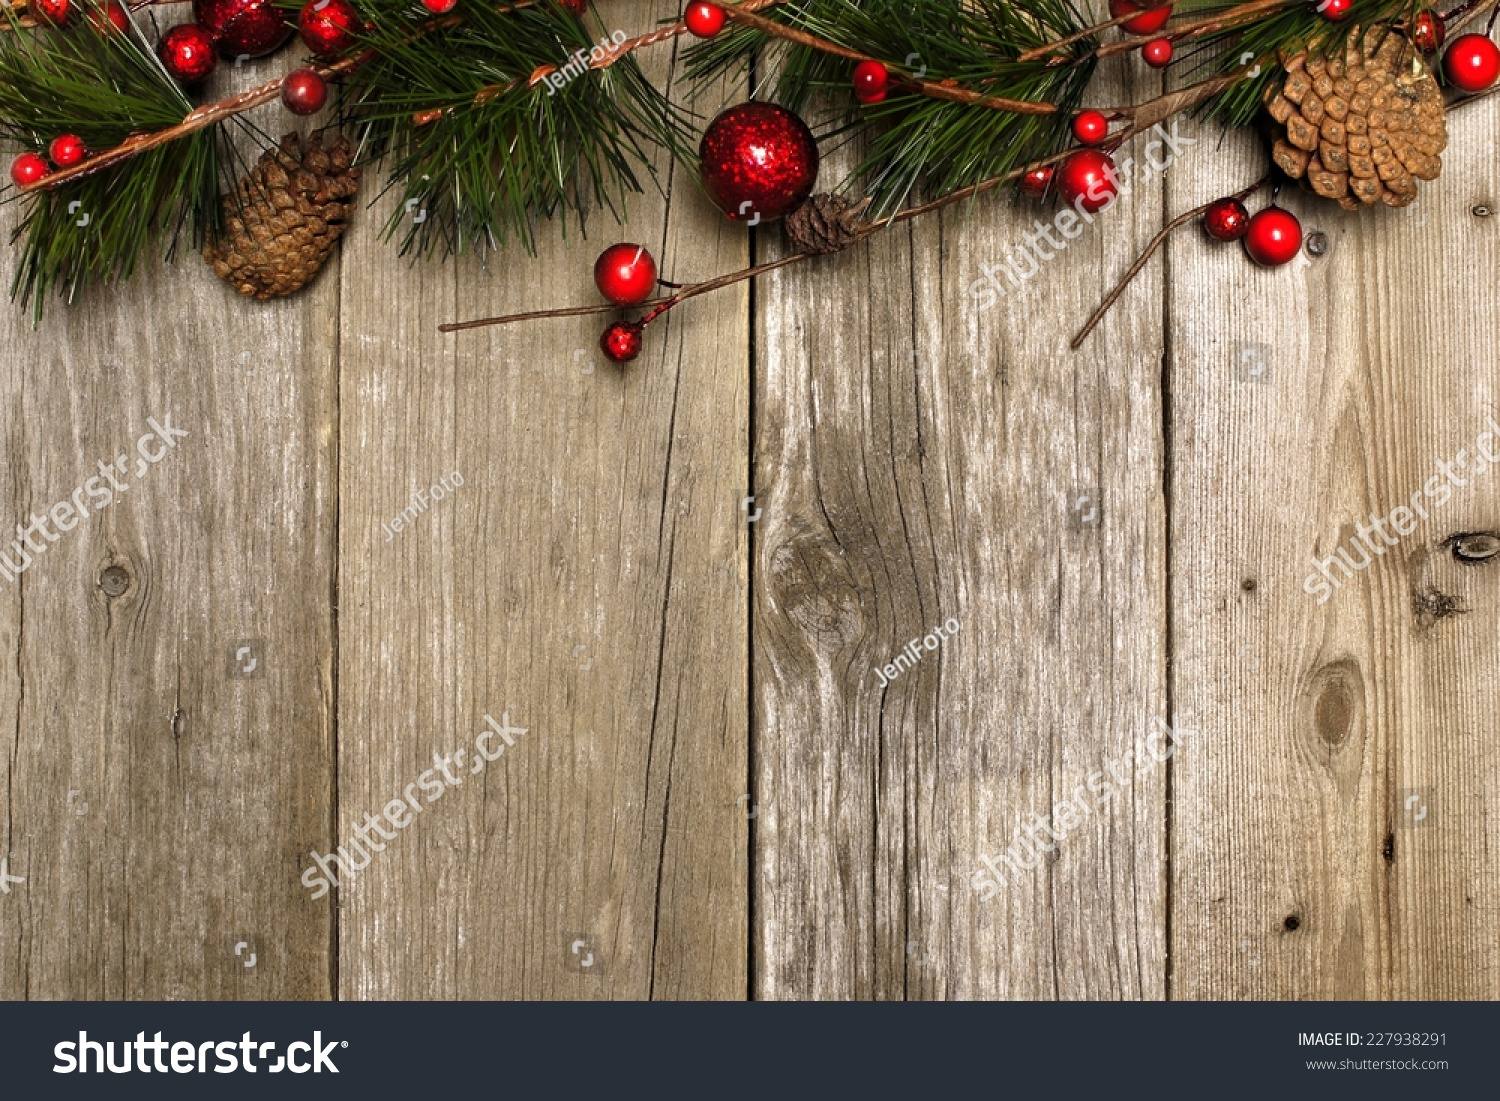 aged wood christmas background with branches and baubles. Black Bedroom Furniture Sets. Home Design Ideas